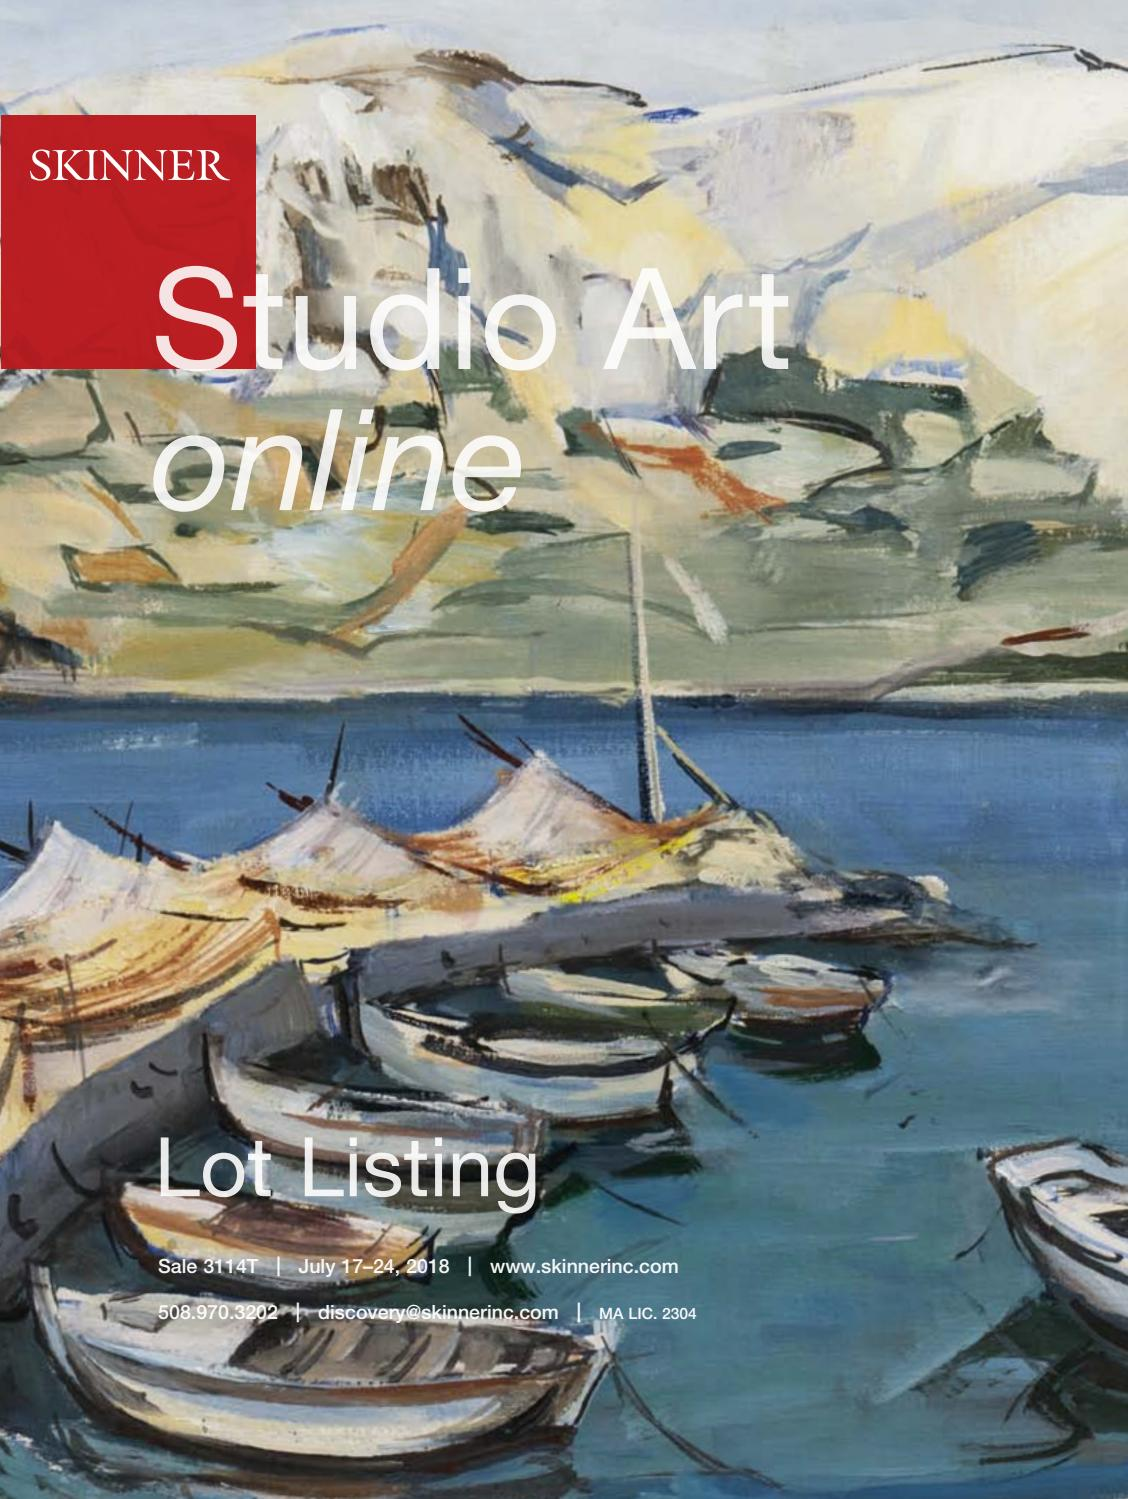 Wiegand Sylt Studio Art Online | Skinner Auction 3114t By Skinner, Inc. - Issuu